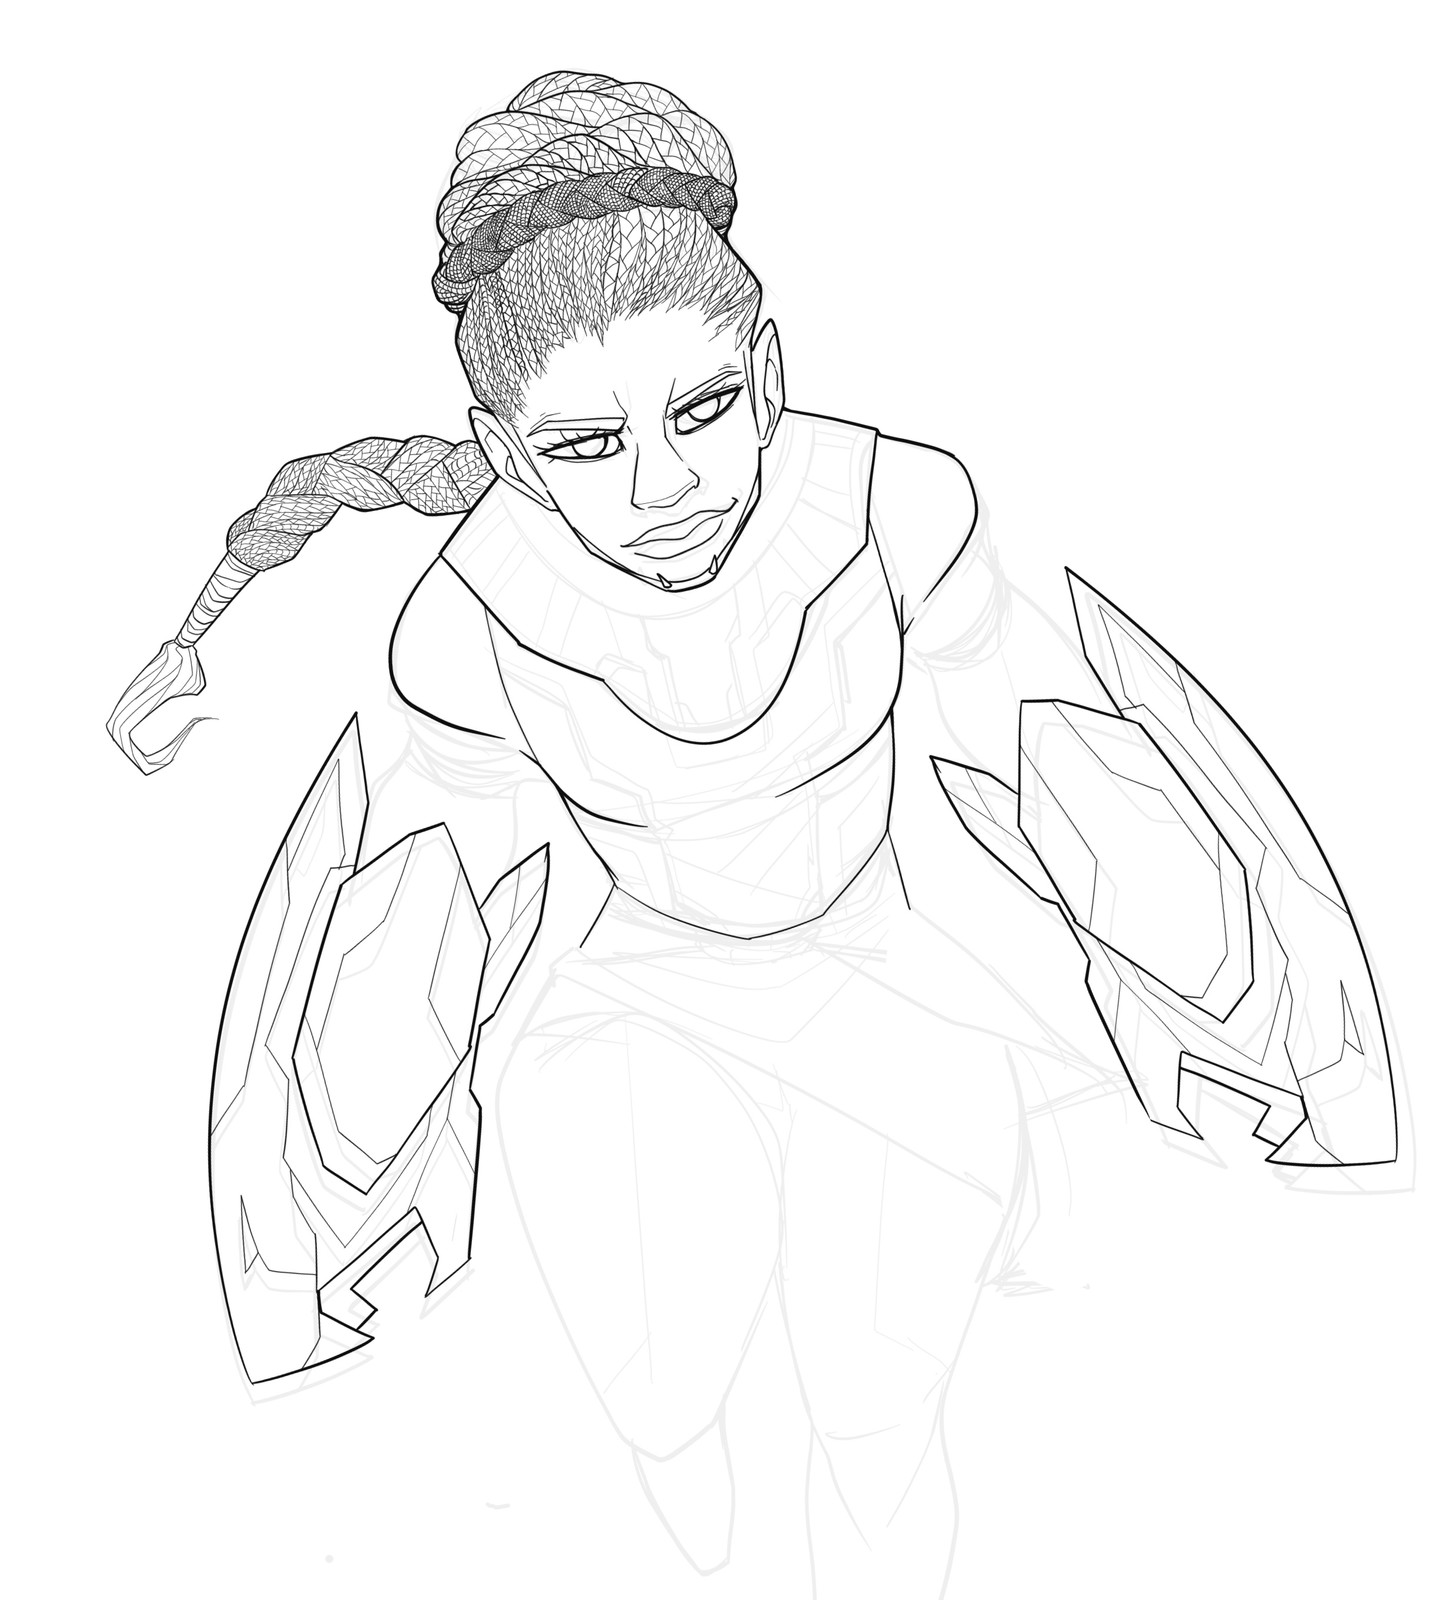 Final clean linework- lord almighty, braids are hard as hell.